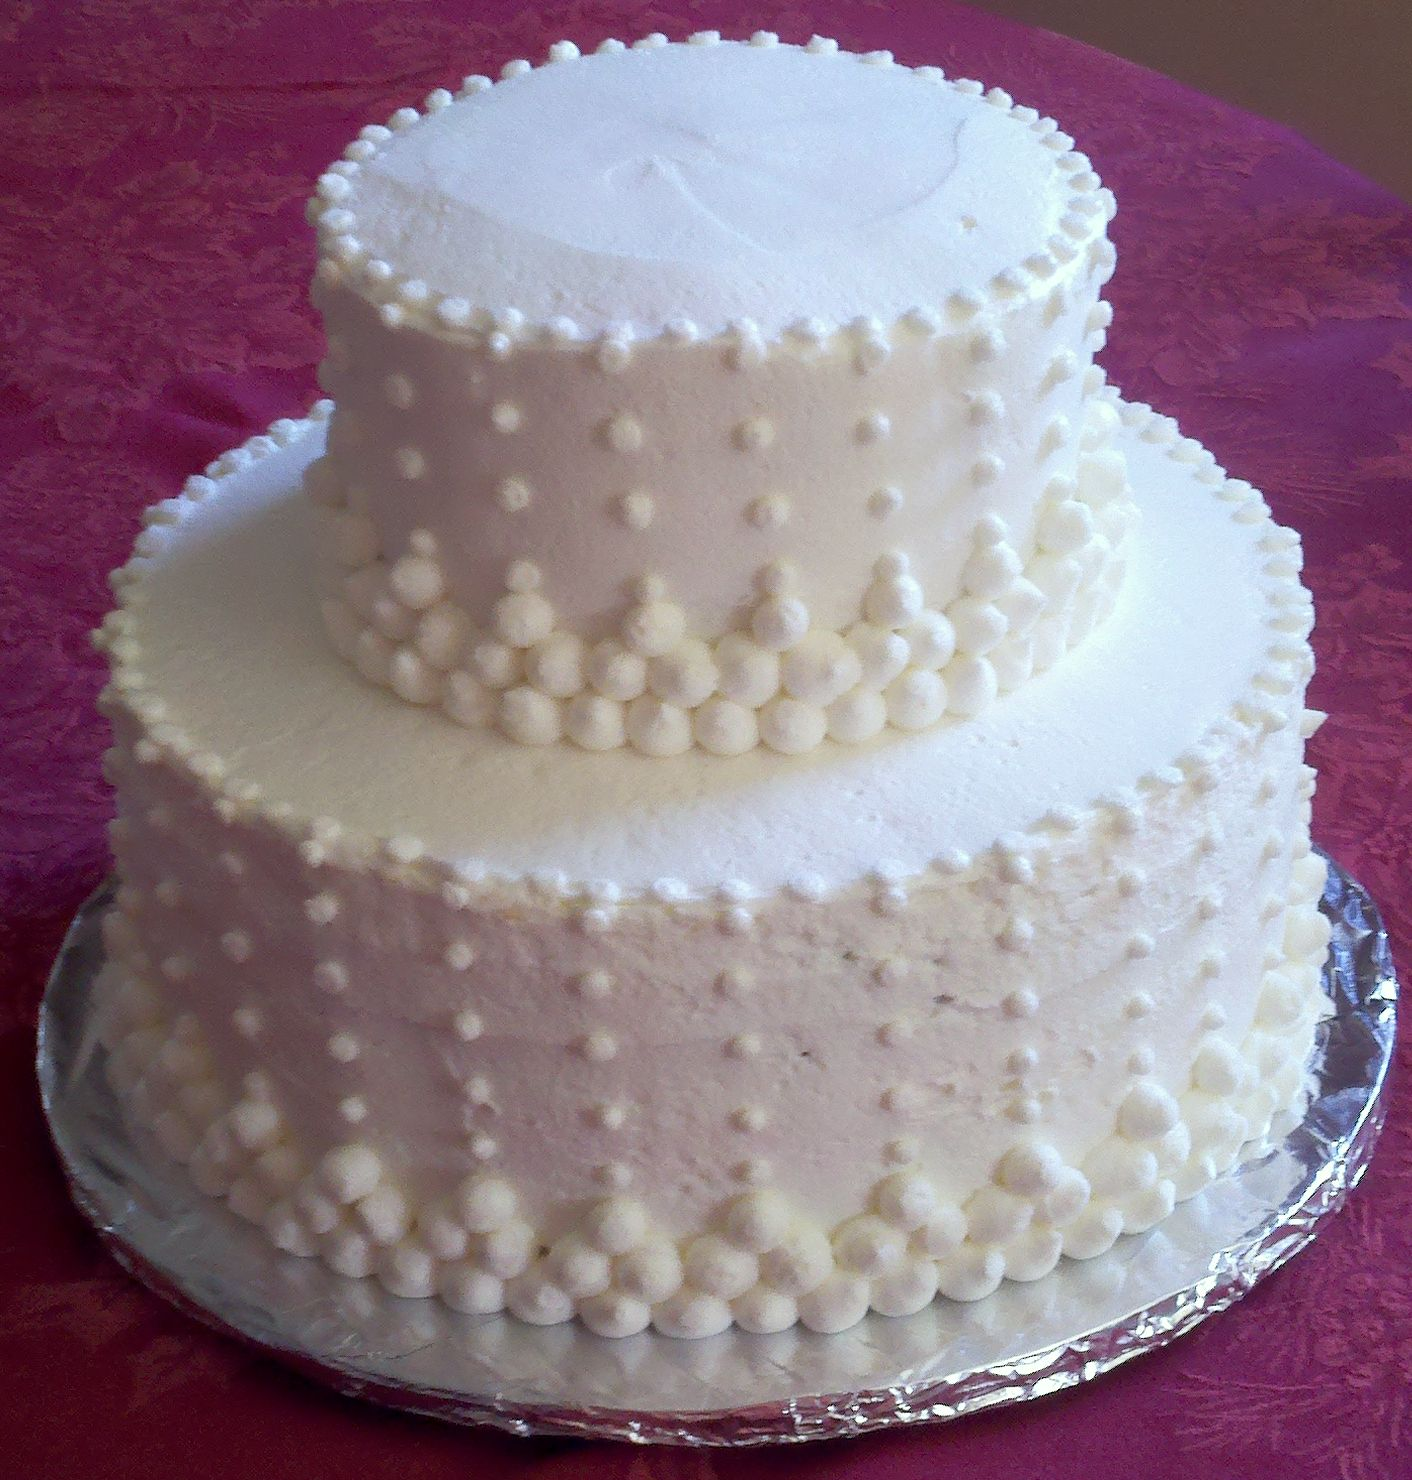 jamaican wedding cake - photo #10